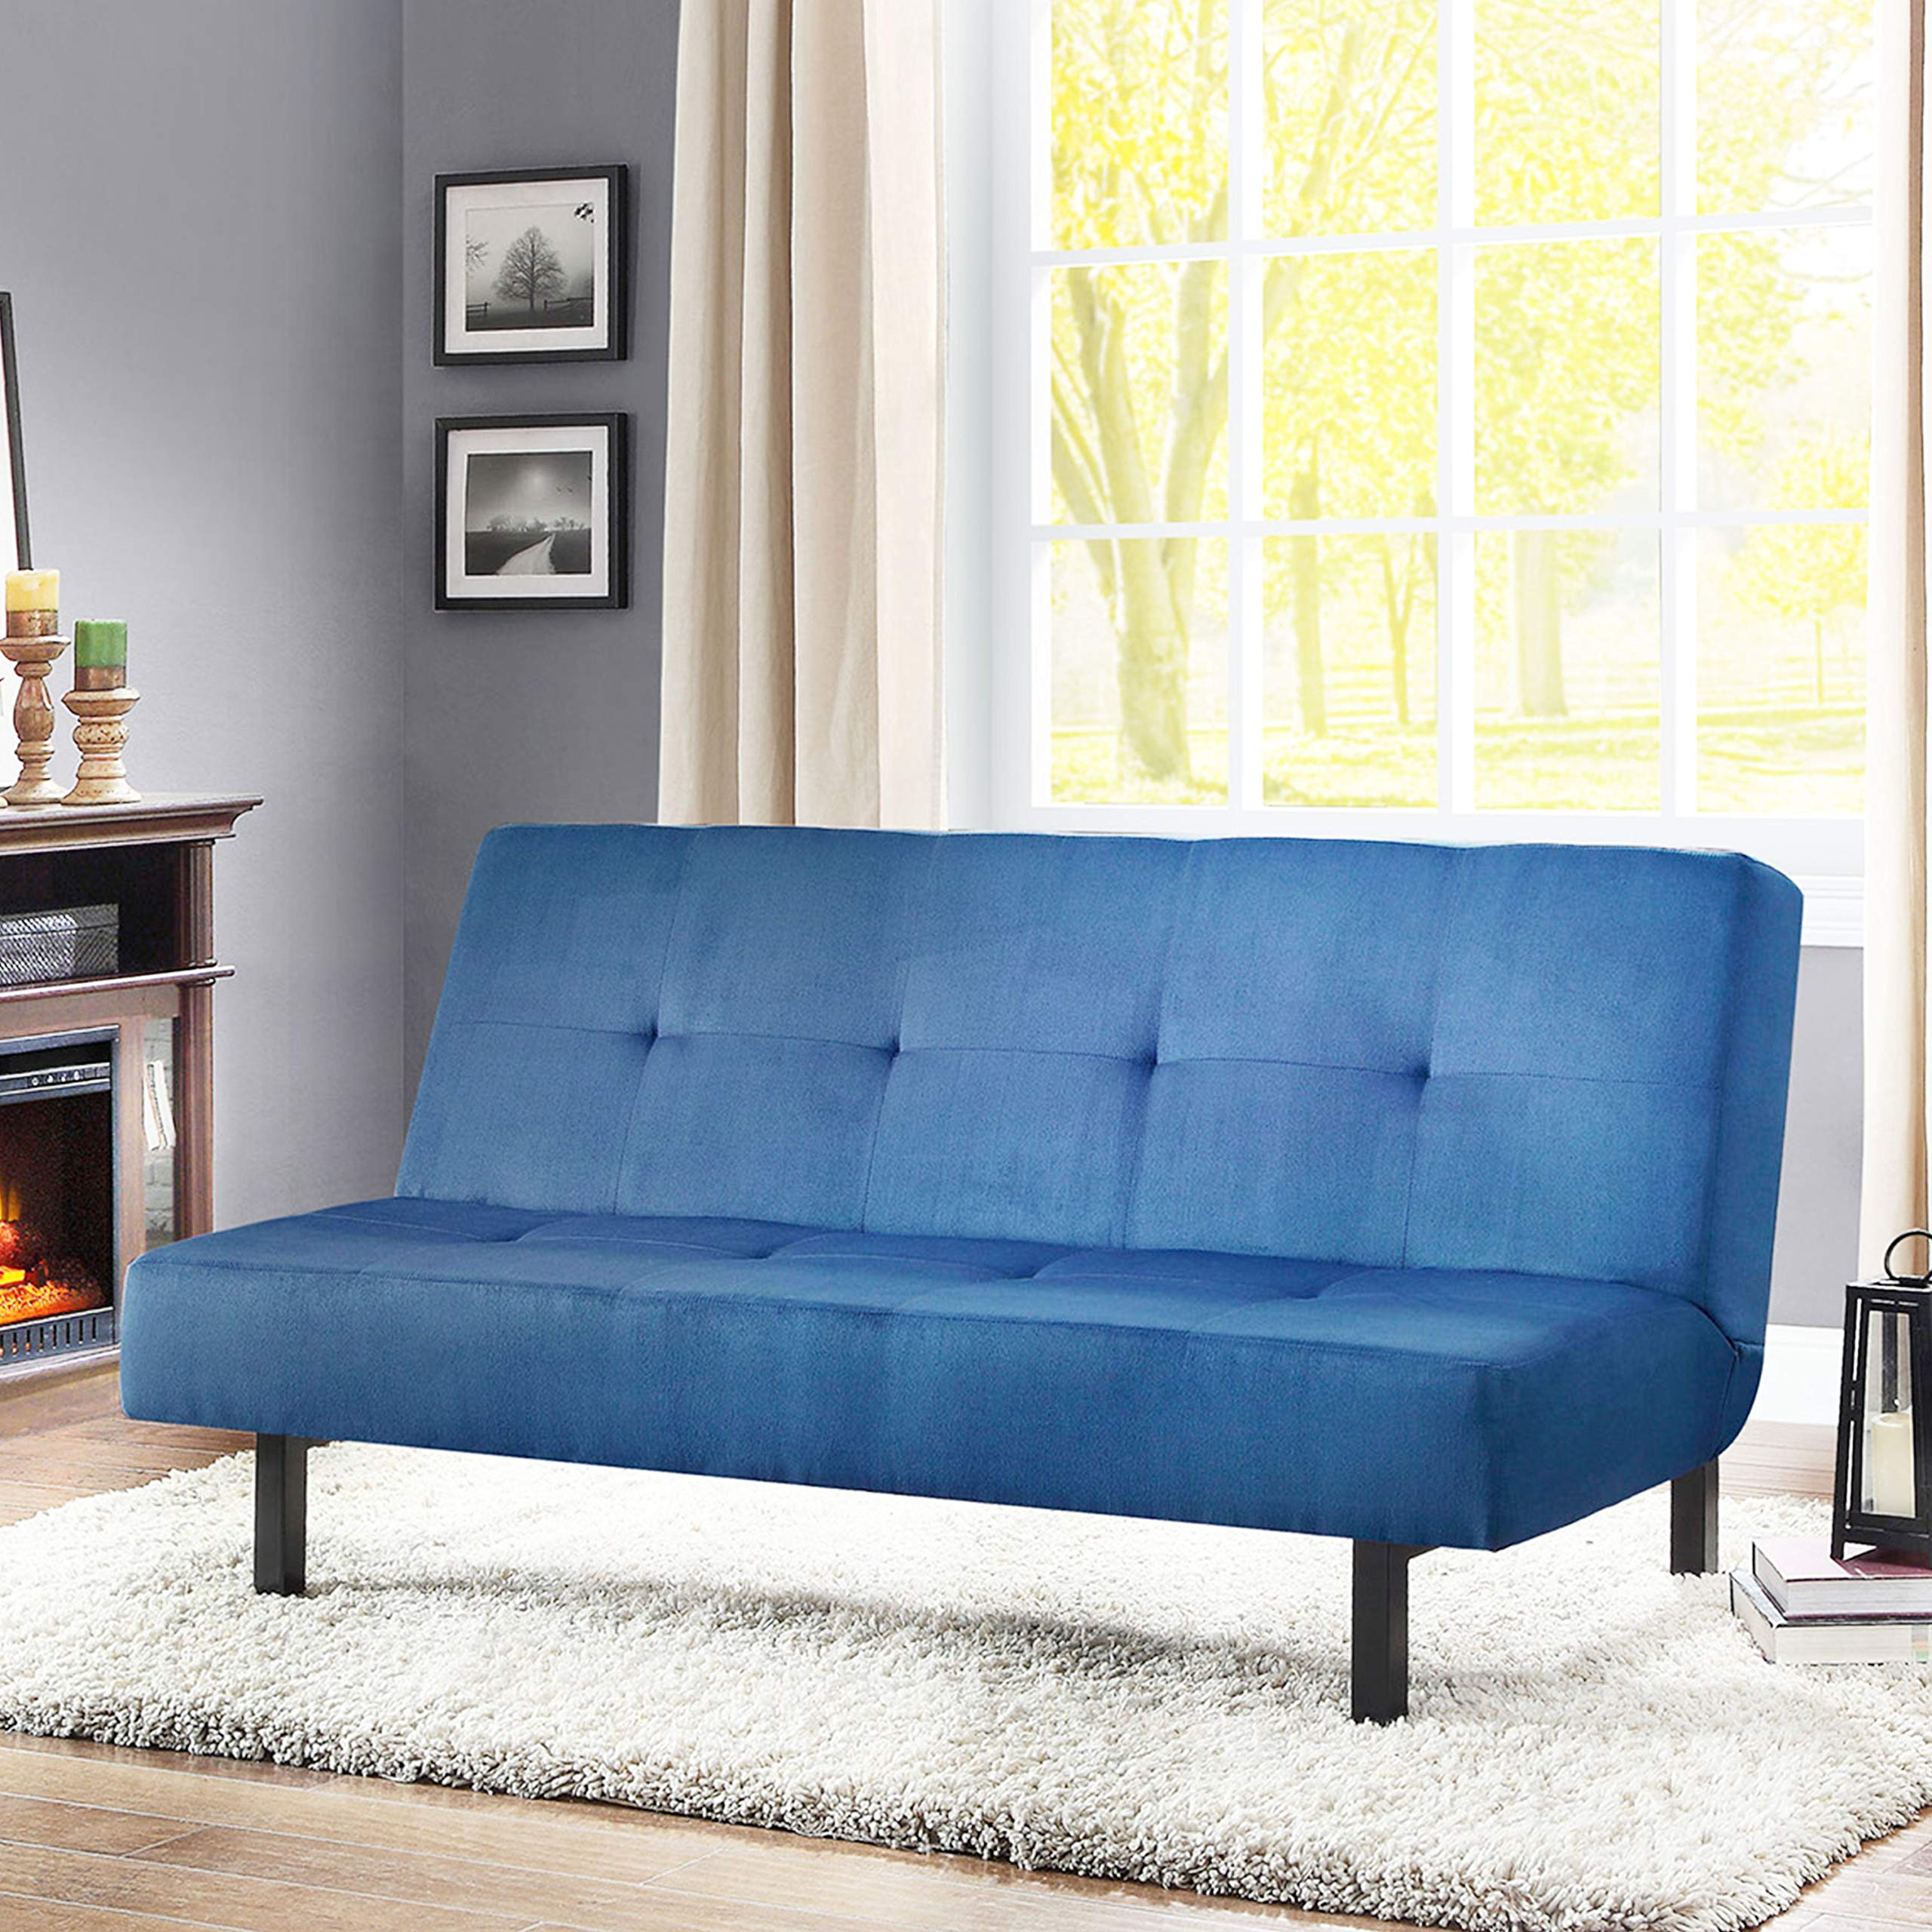 Mainstays 3 Position Tufted Futon, Multiple Colors (Blue) by Mainstays...